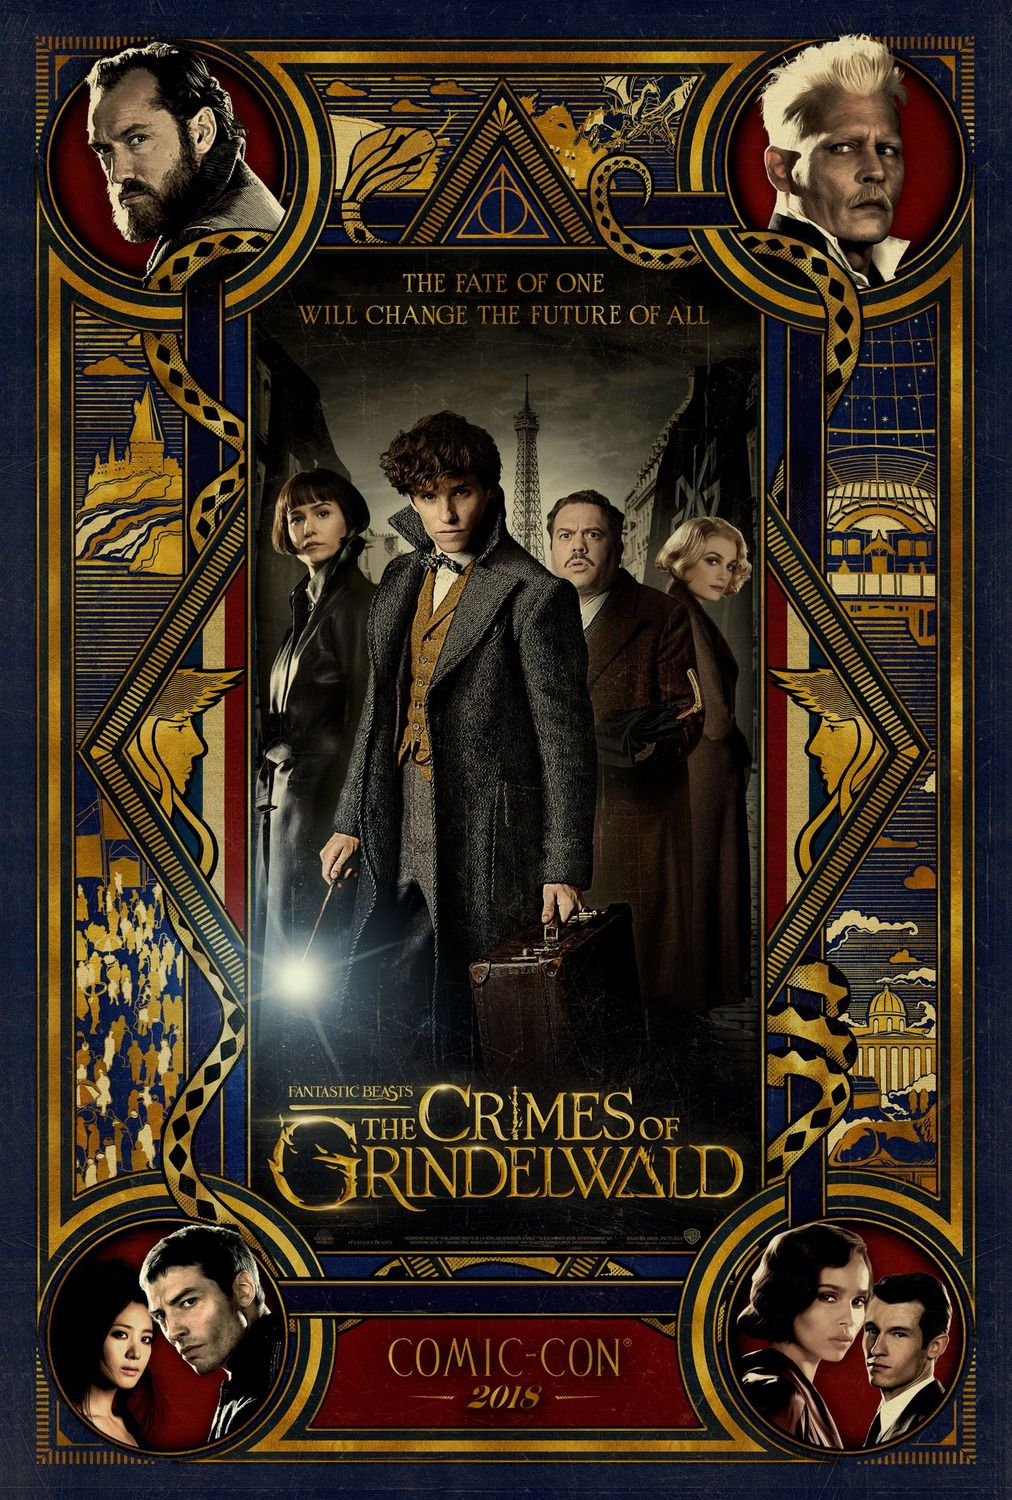 Fantastic Beasts the Crimes of Grindelwald 2018 fantasy film poster